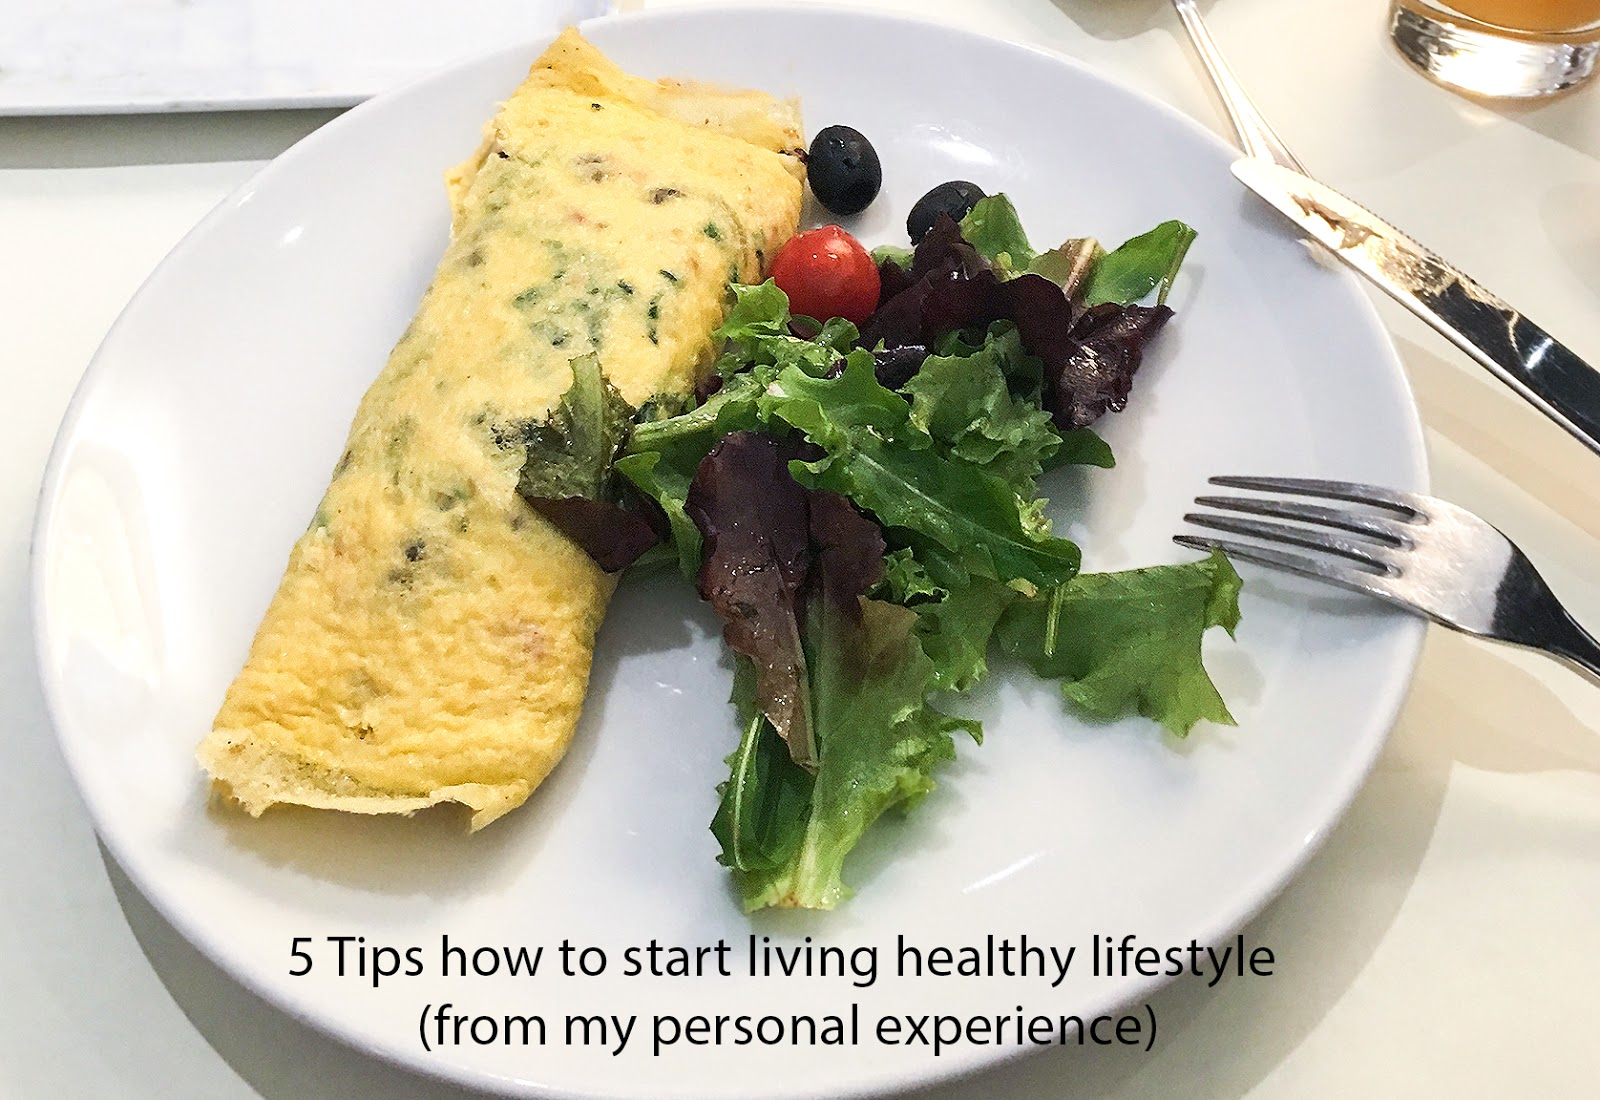 diet, 5 tips to healthy lifestyle